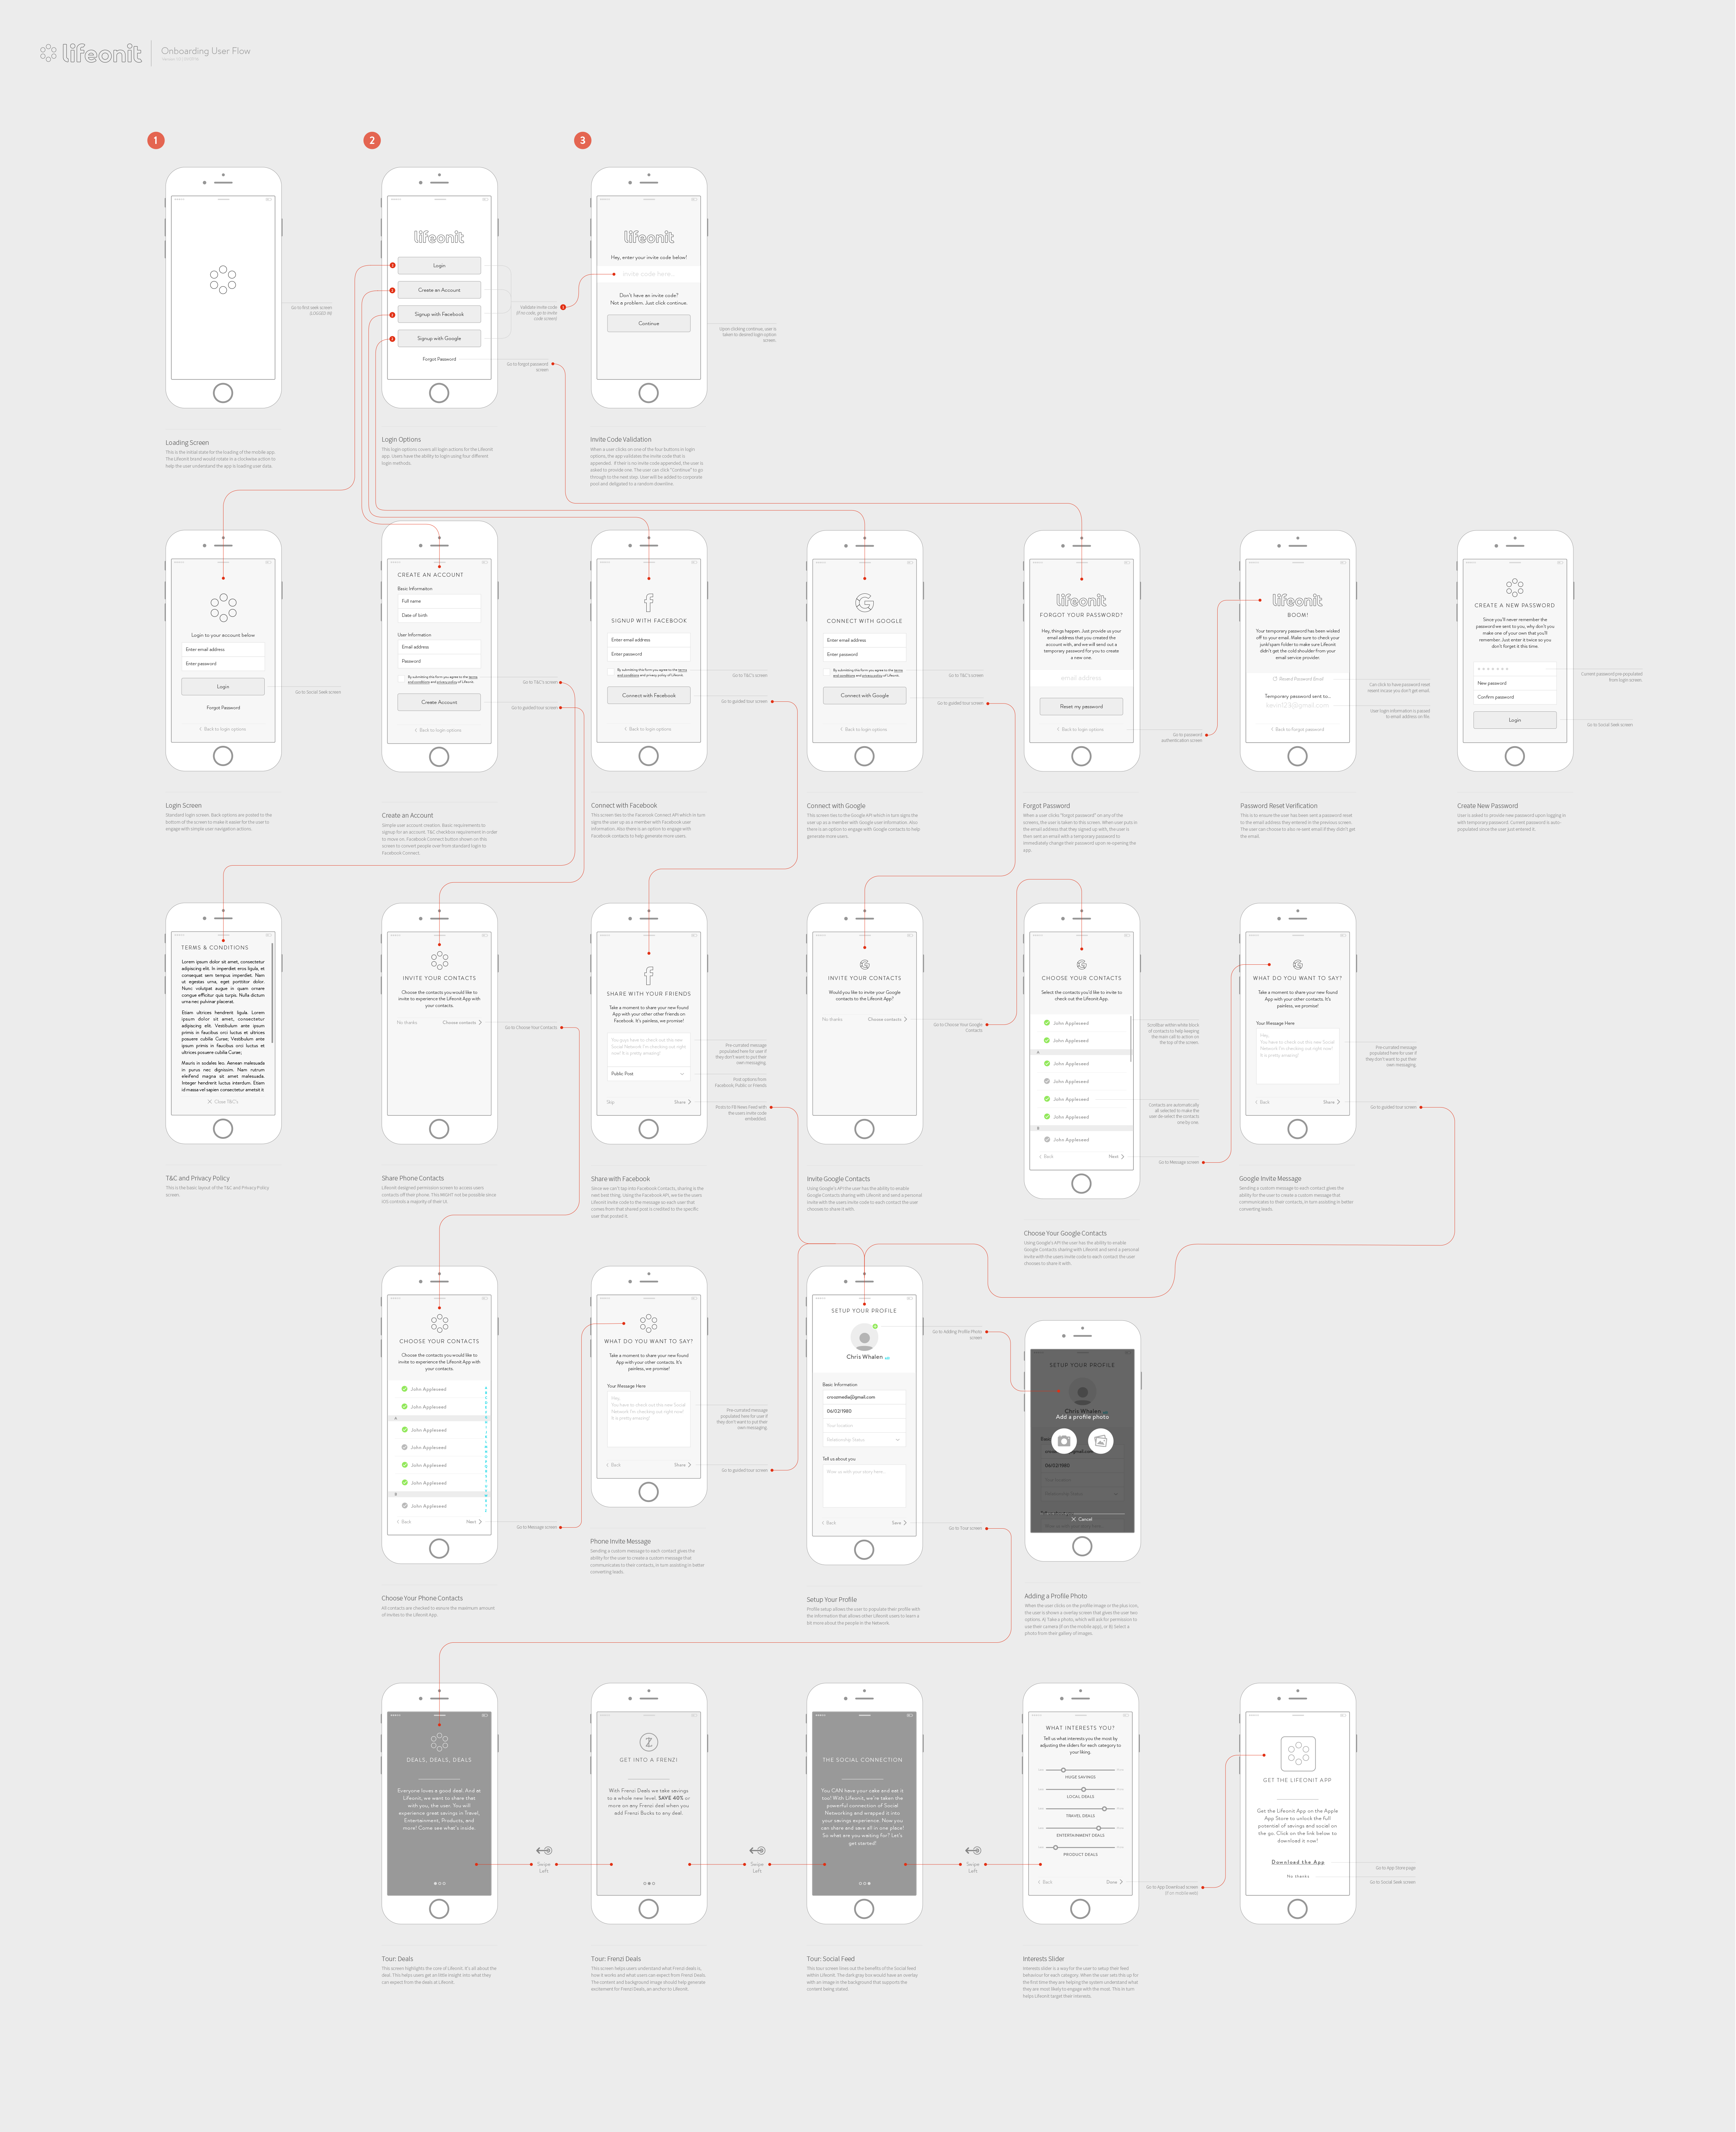 Lifeonit initial wireframe